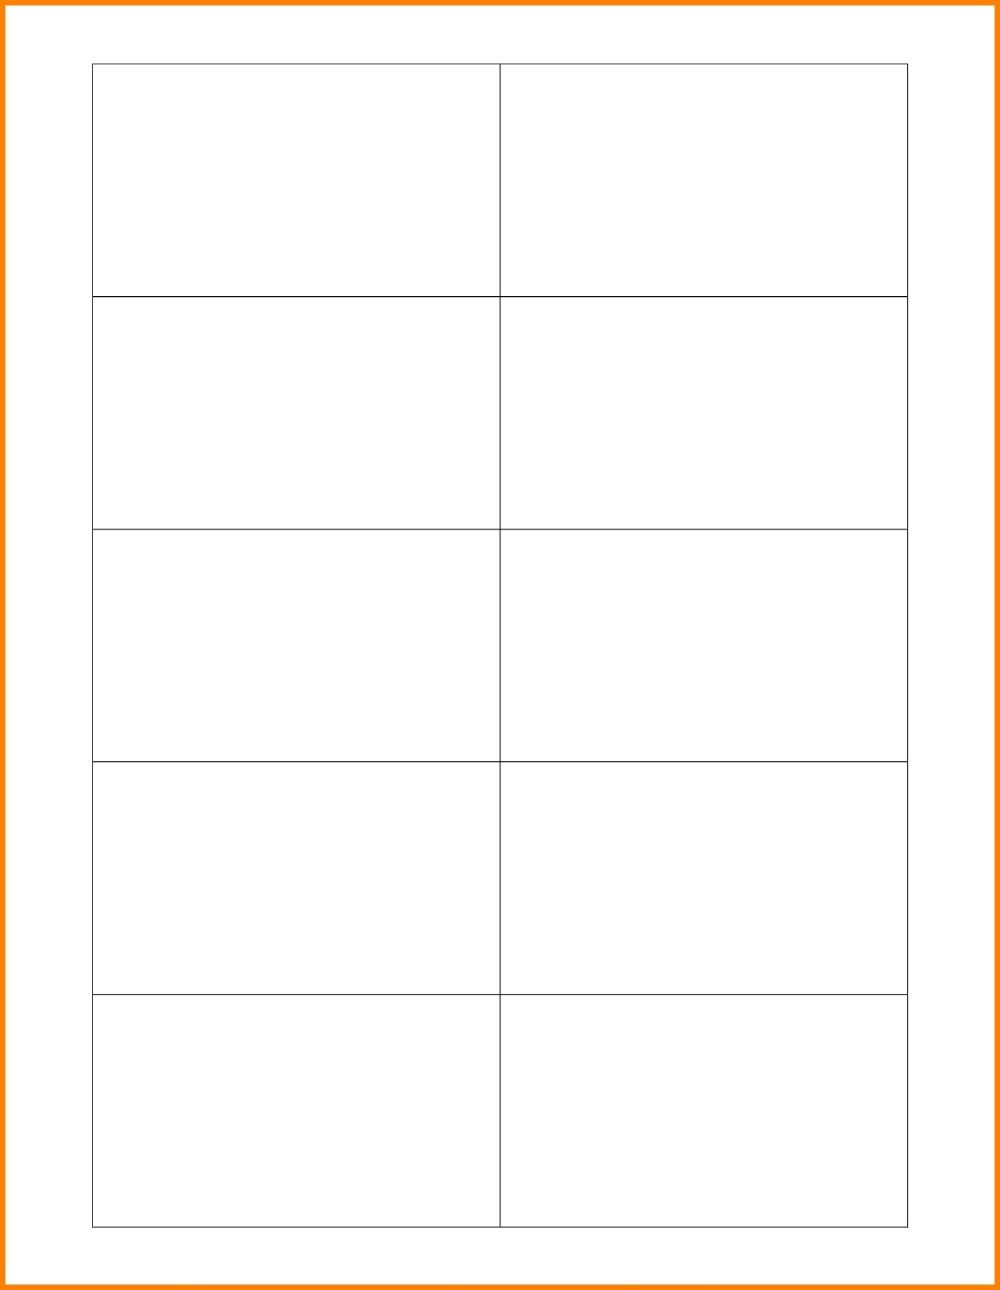 003 Marvelou Plain Busines Card Template Photo  White Free Download Blank Printable Word 2010